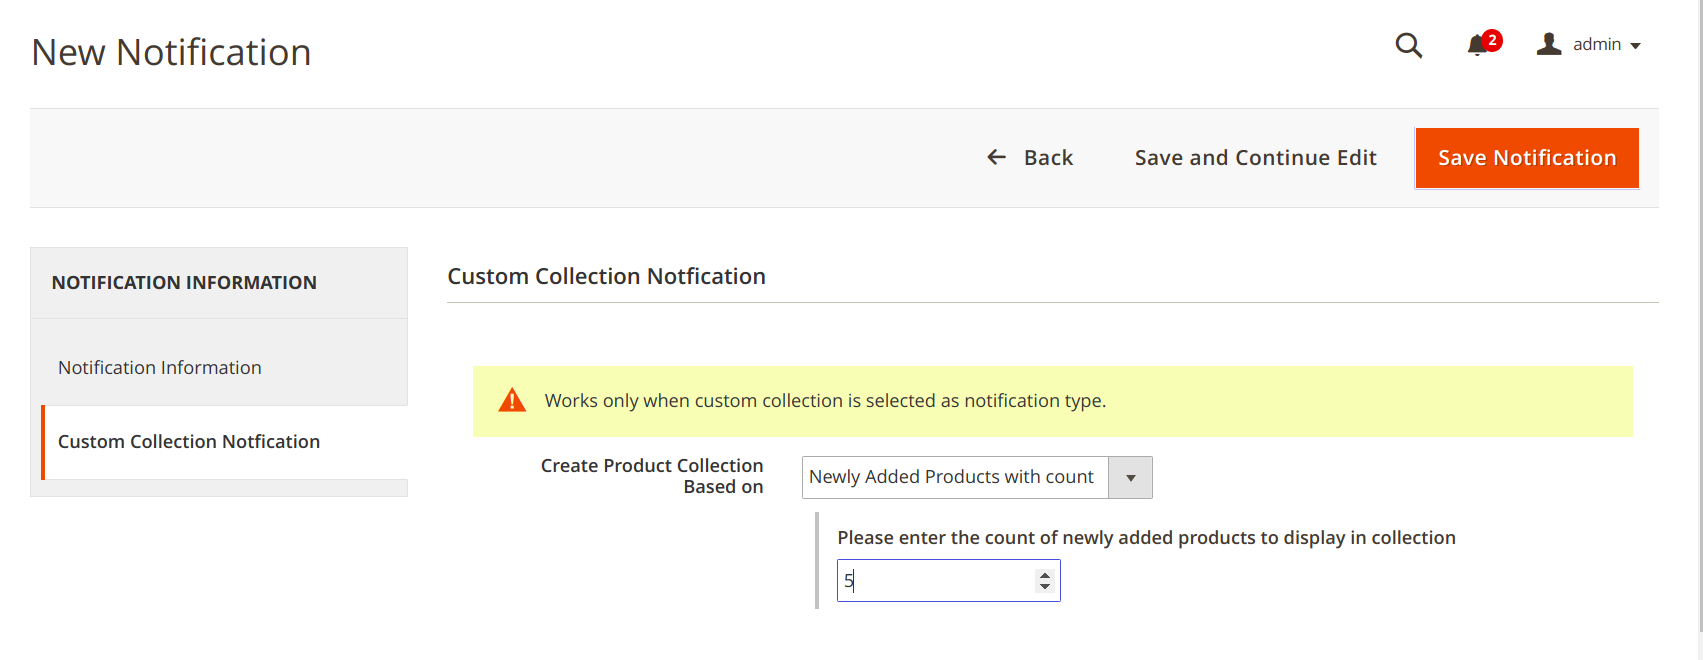 notifications_customcollection_newproductcount